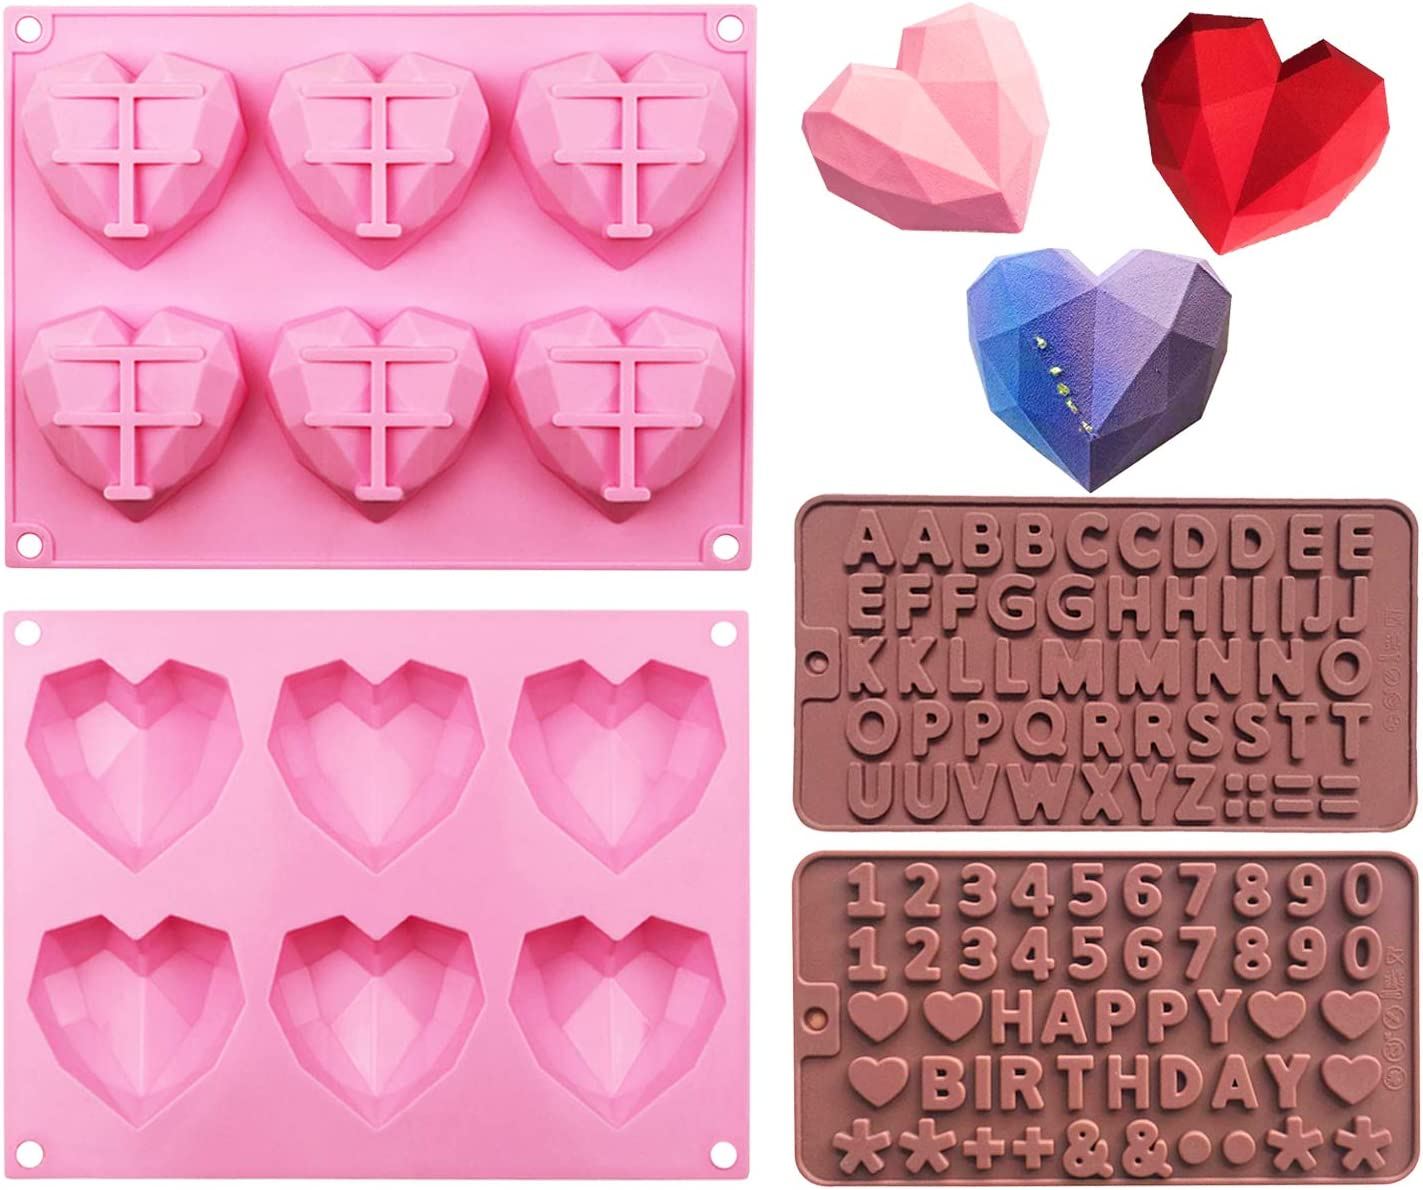 2 Pcs 6 Holes Diamond Heart Shaped Silicone Mold ,Comes with Silicone Letter and Number Chocolate Mold for DIY Cake Mousse Dessert, Candy Fondant, Cupcake Cheesecake